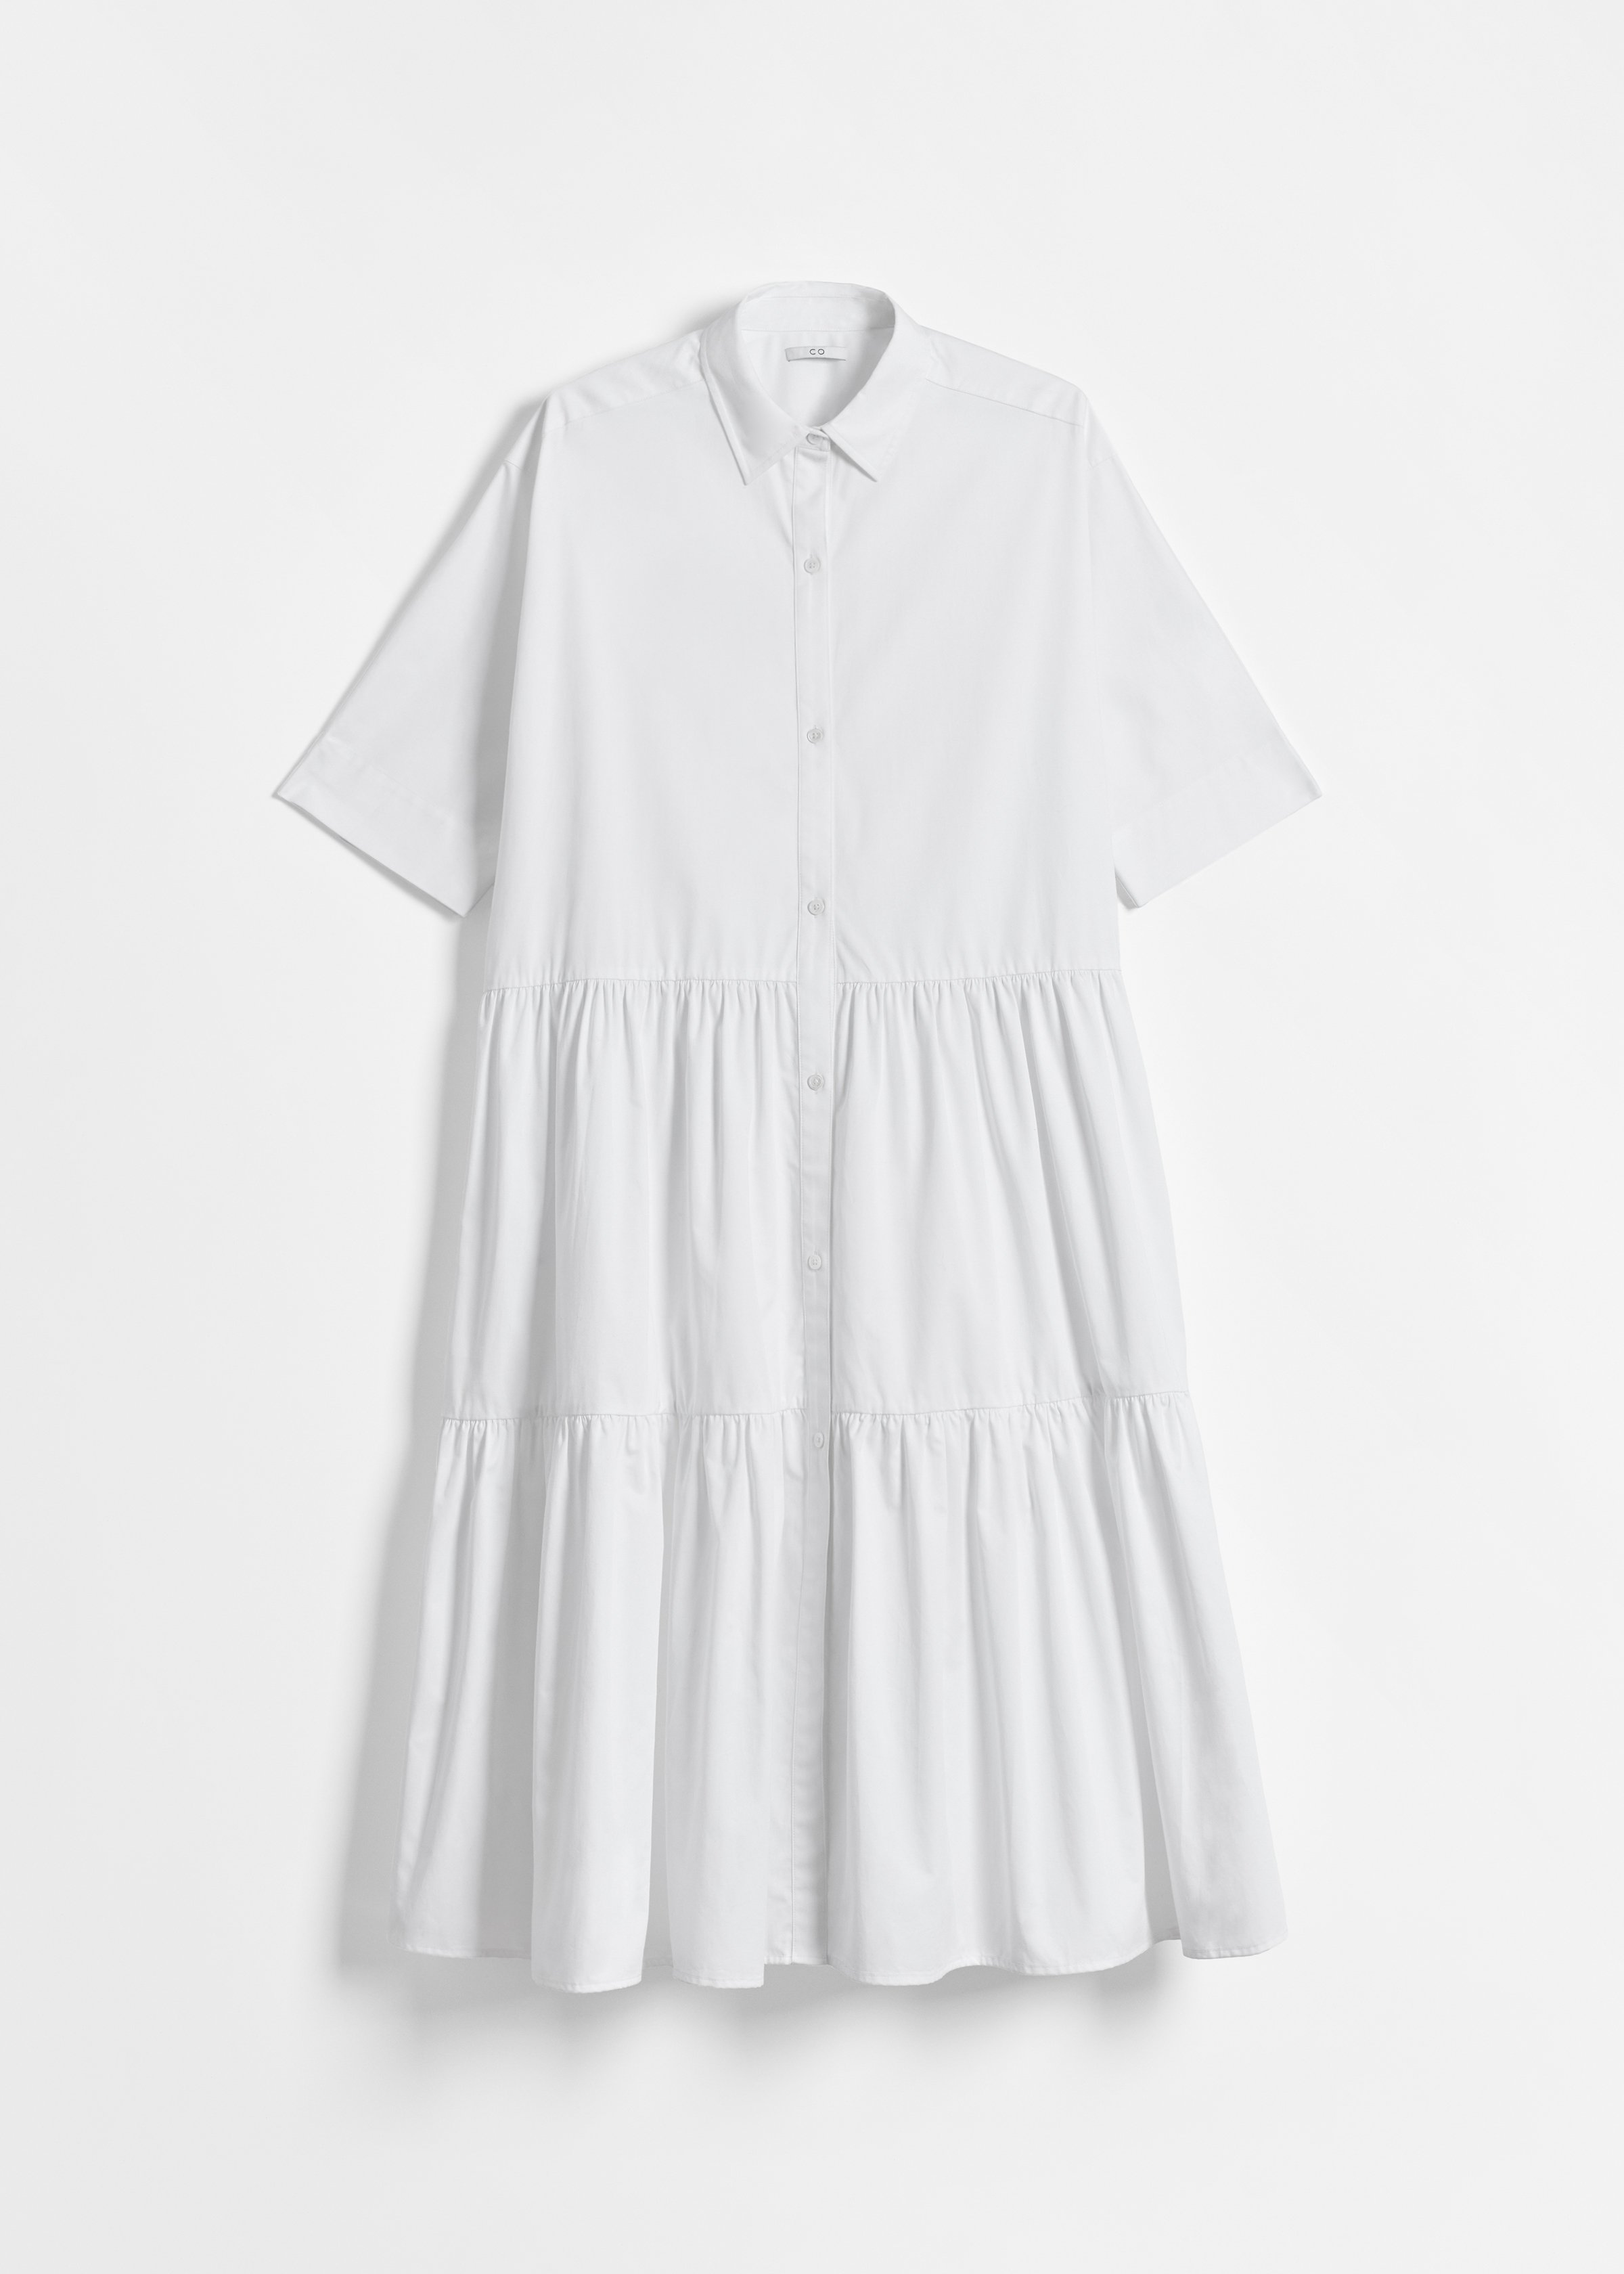 CO - Short Sleeve Tiered Dress in Cotton Poplin - White